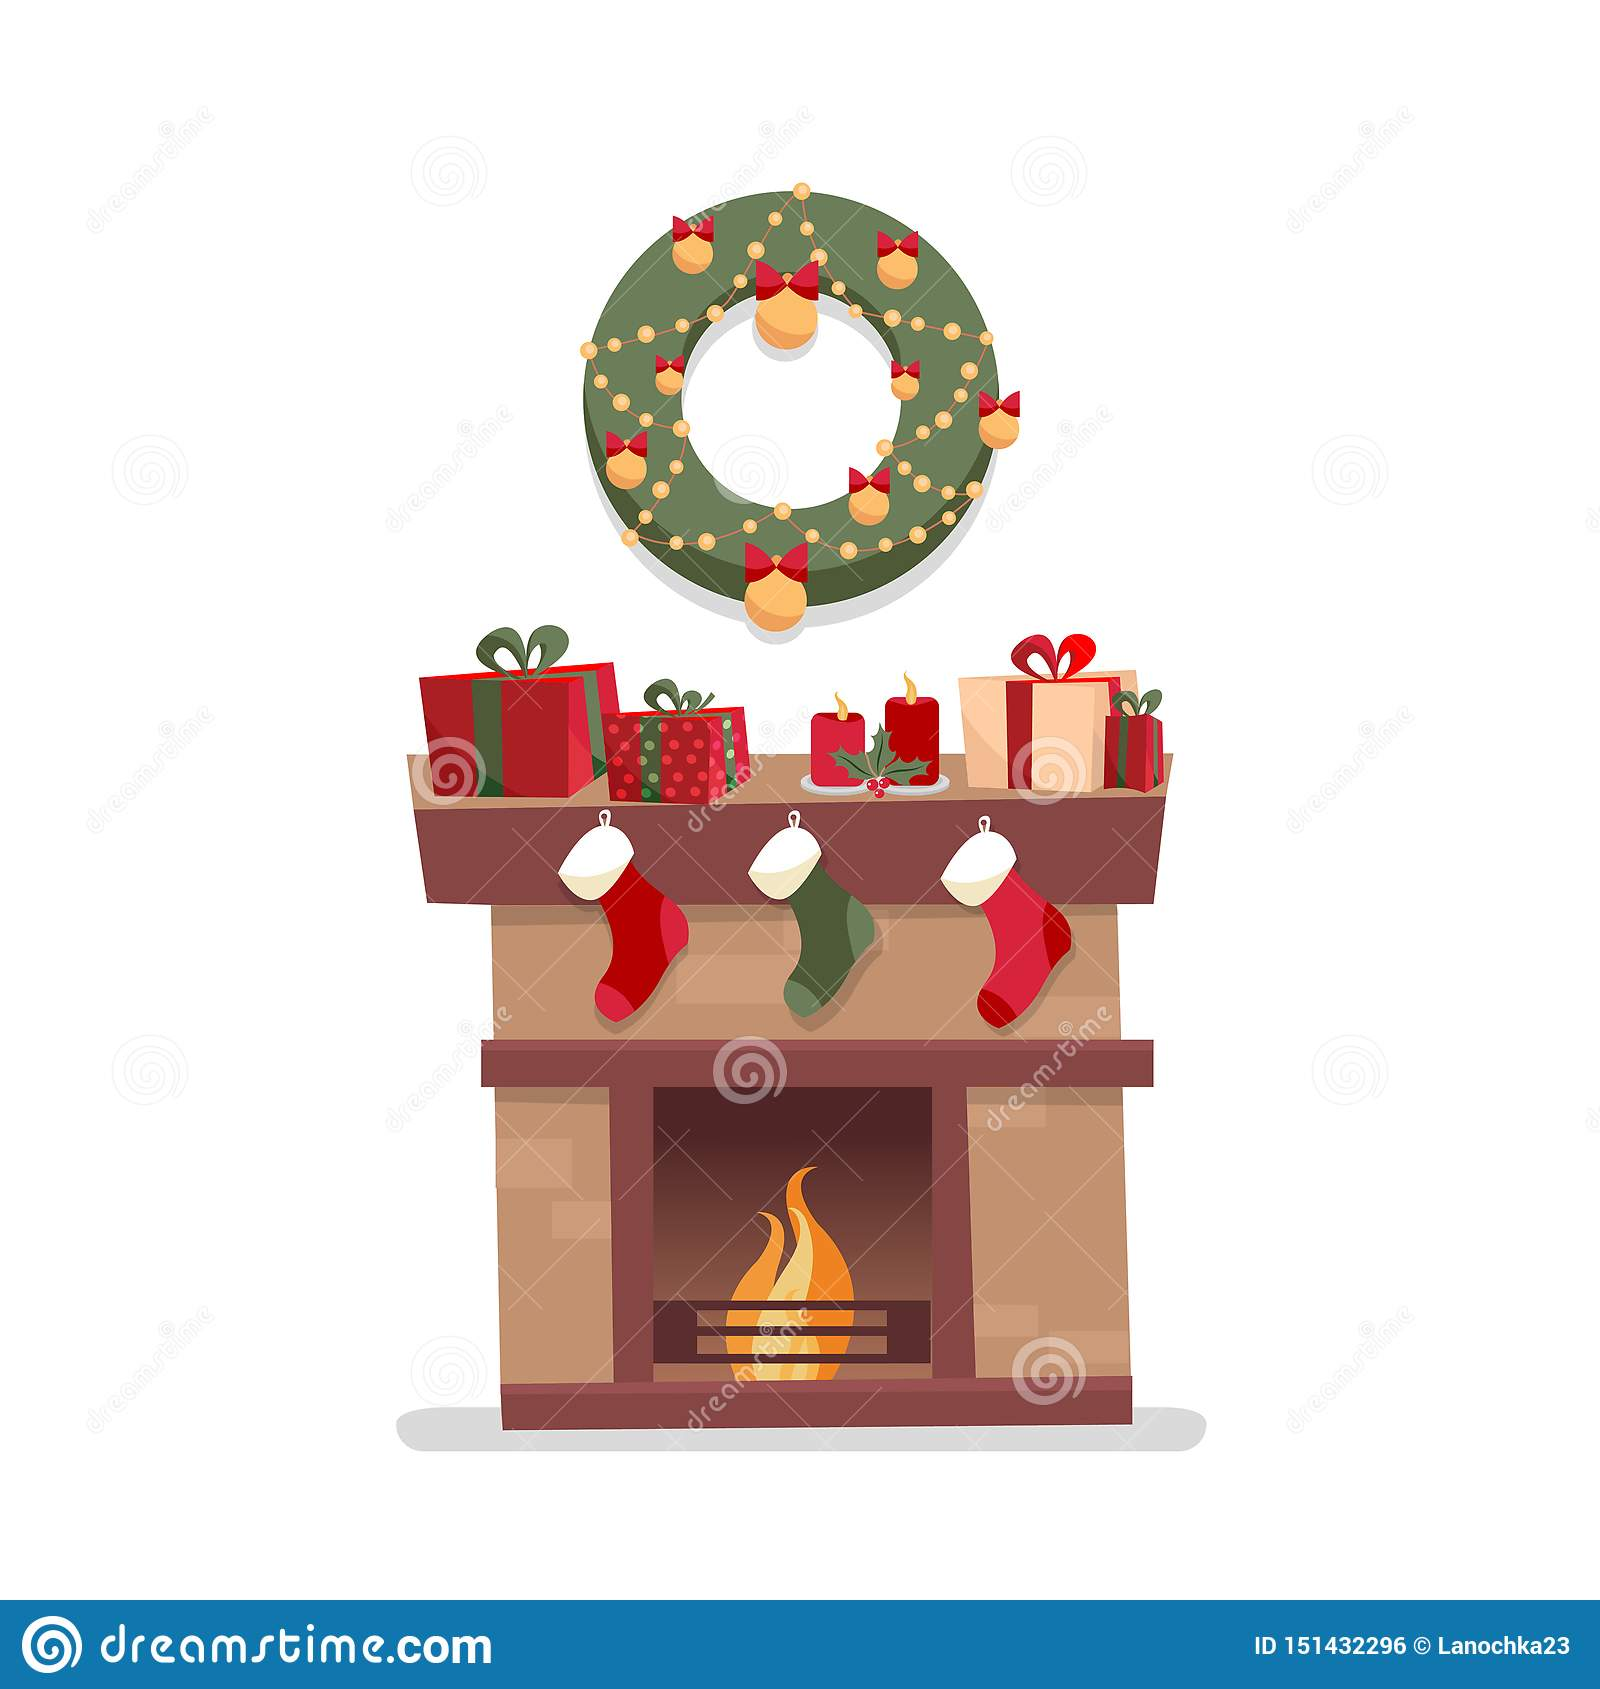 Christmas fireplace with socks, decorations, gift boxes, candeles, socks and wreath on a white background. Cozy flat cartoon style